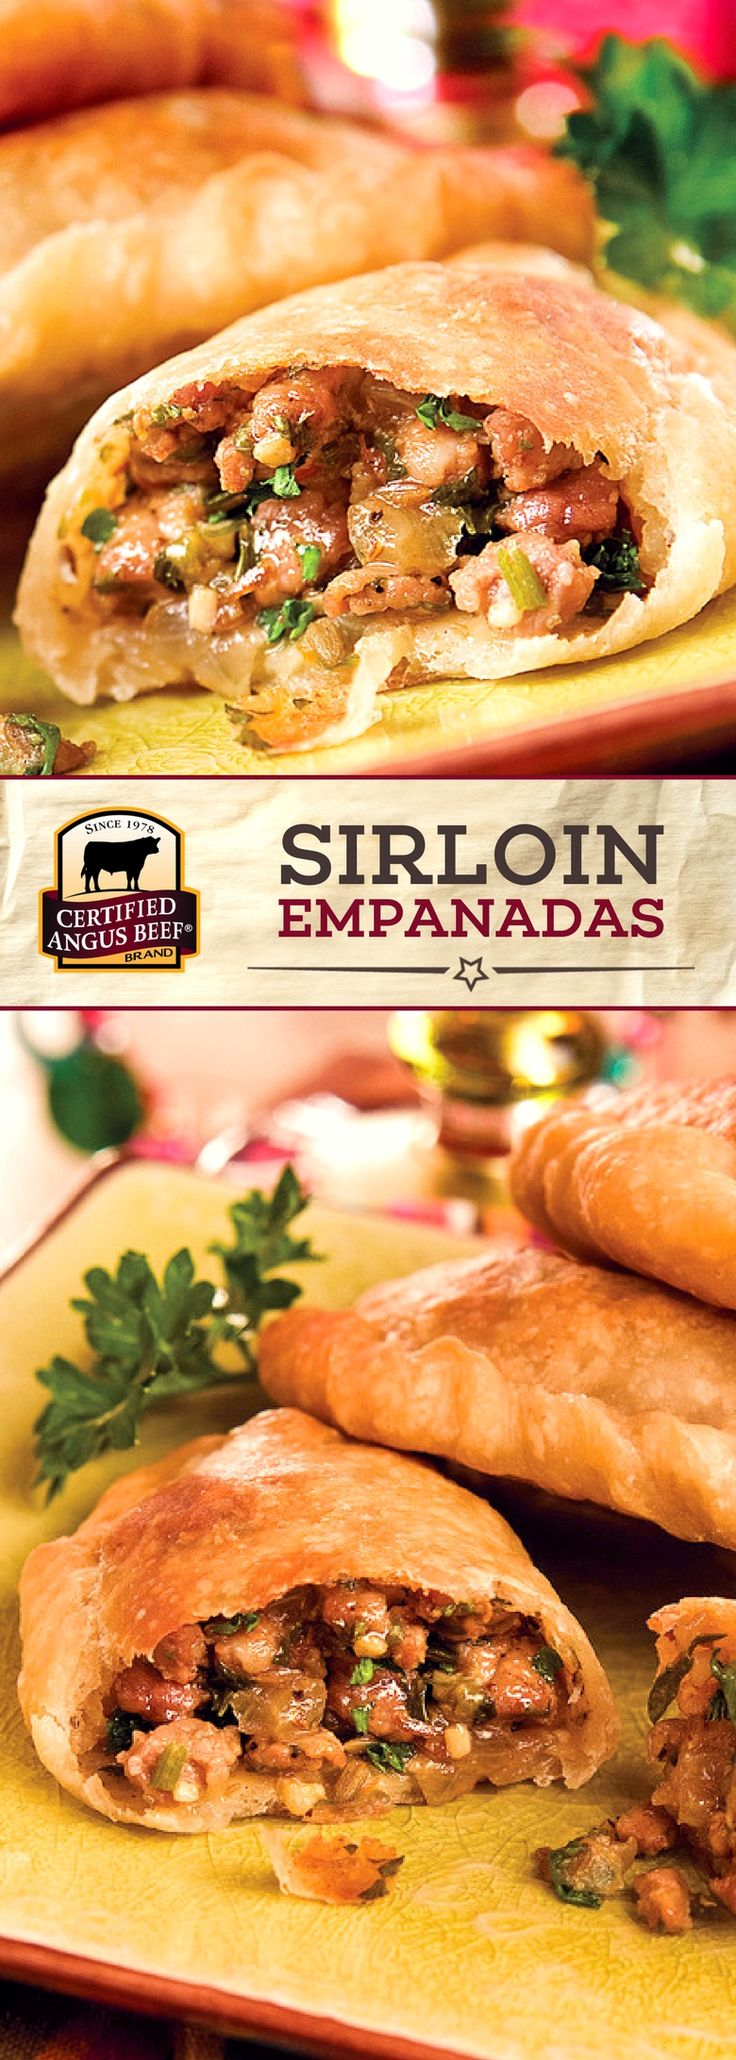 Sirloin Empanadas combines top sirloin or tri-tip steak with a blend of delicious spices, green chilies, and onion for a TASTY beef recipe! This dish makes a great appetizer recipe or main dish, and is PERFECT for game day!